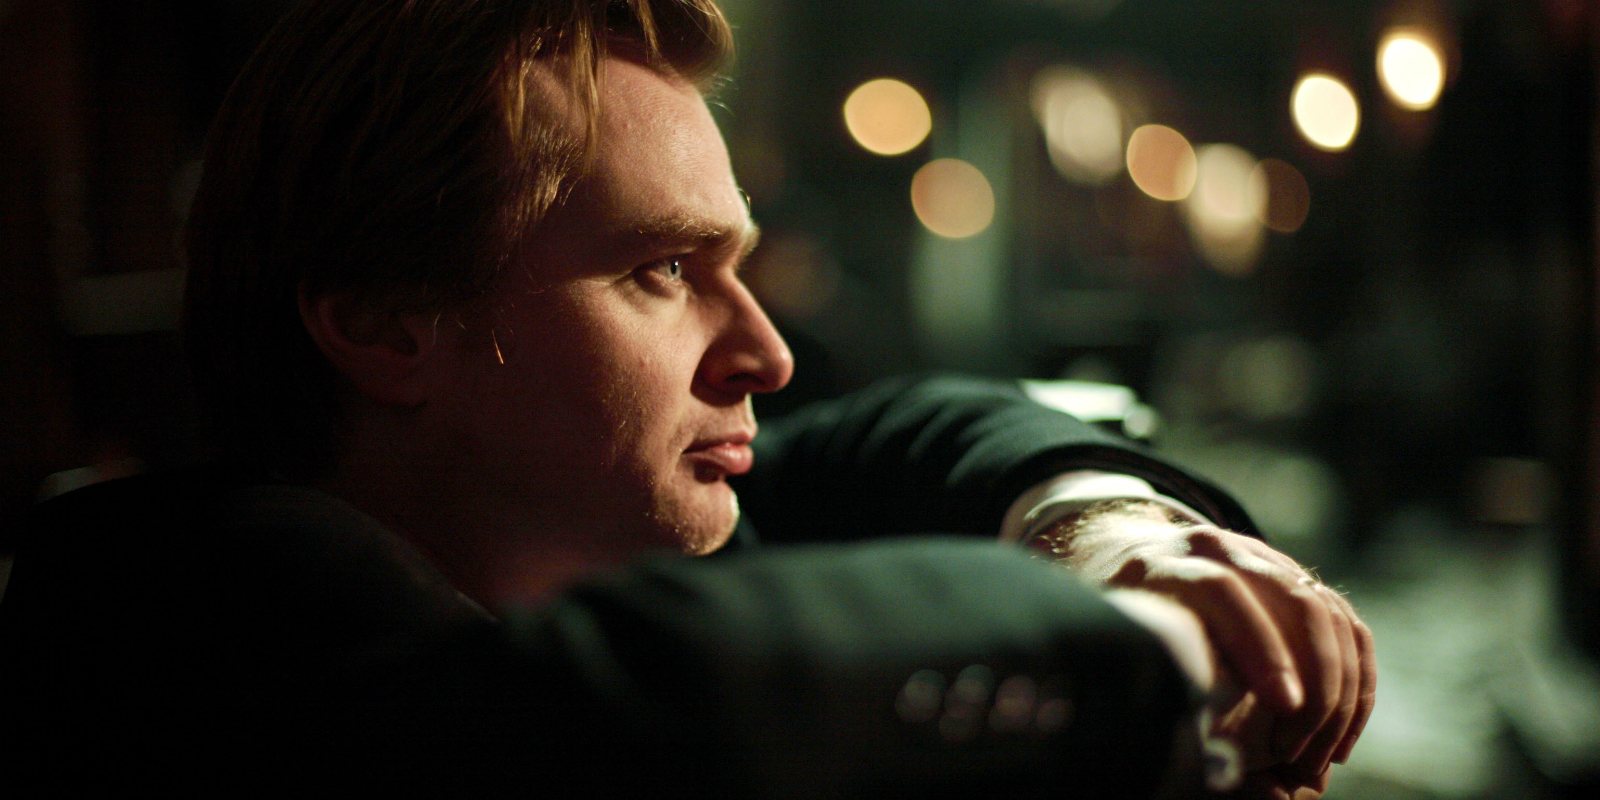 christopher nolan film director Christopher nolan's latest film, dunkirk, has many of the characteristics that  define his collective filmography we take a look at what those traits.